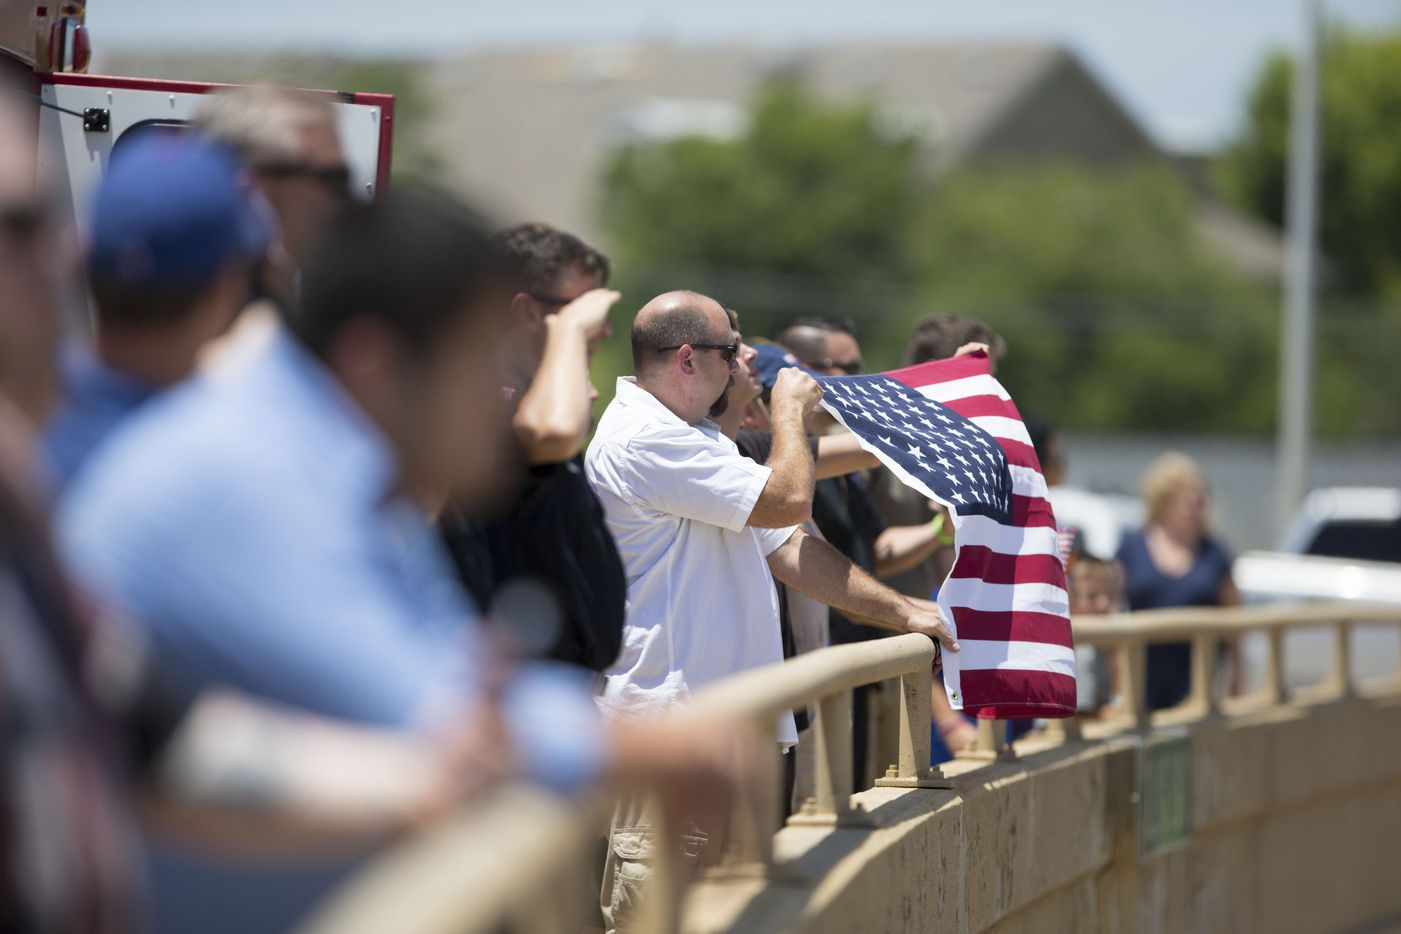 Bill Purdom, and son Tyler, from Rowlett, Texas holds a flag over US hwy 75 during the funeral procession of Dallas police Sr. Cpl. Lorne Ahrens at  on July 13, 2016 in Richardson, Texas.